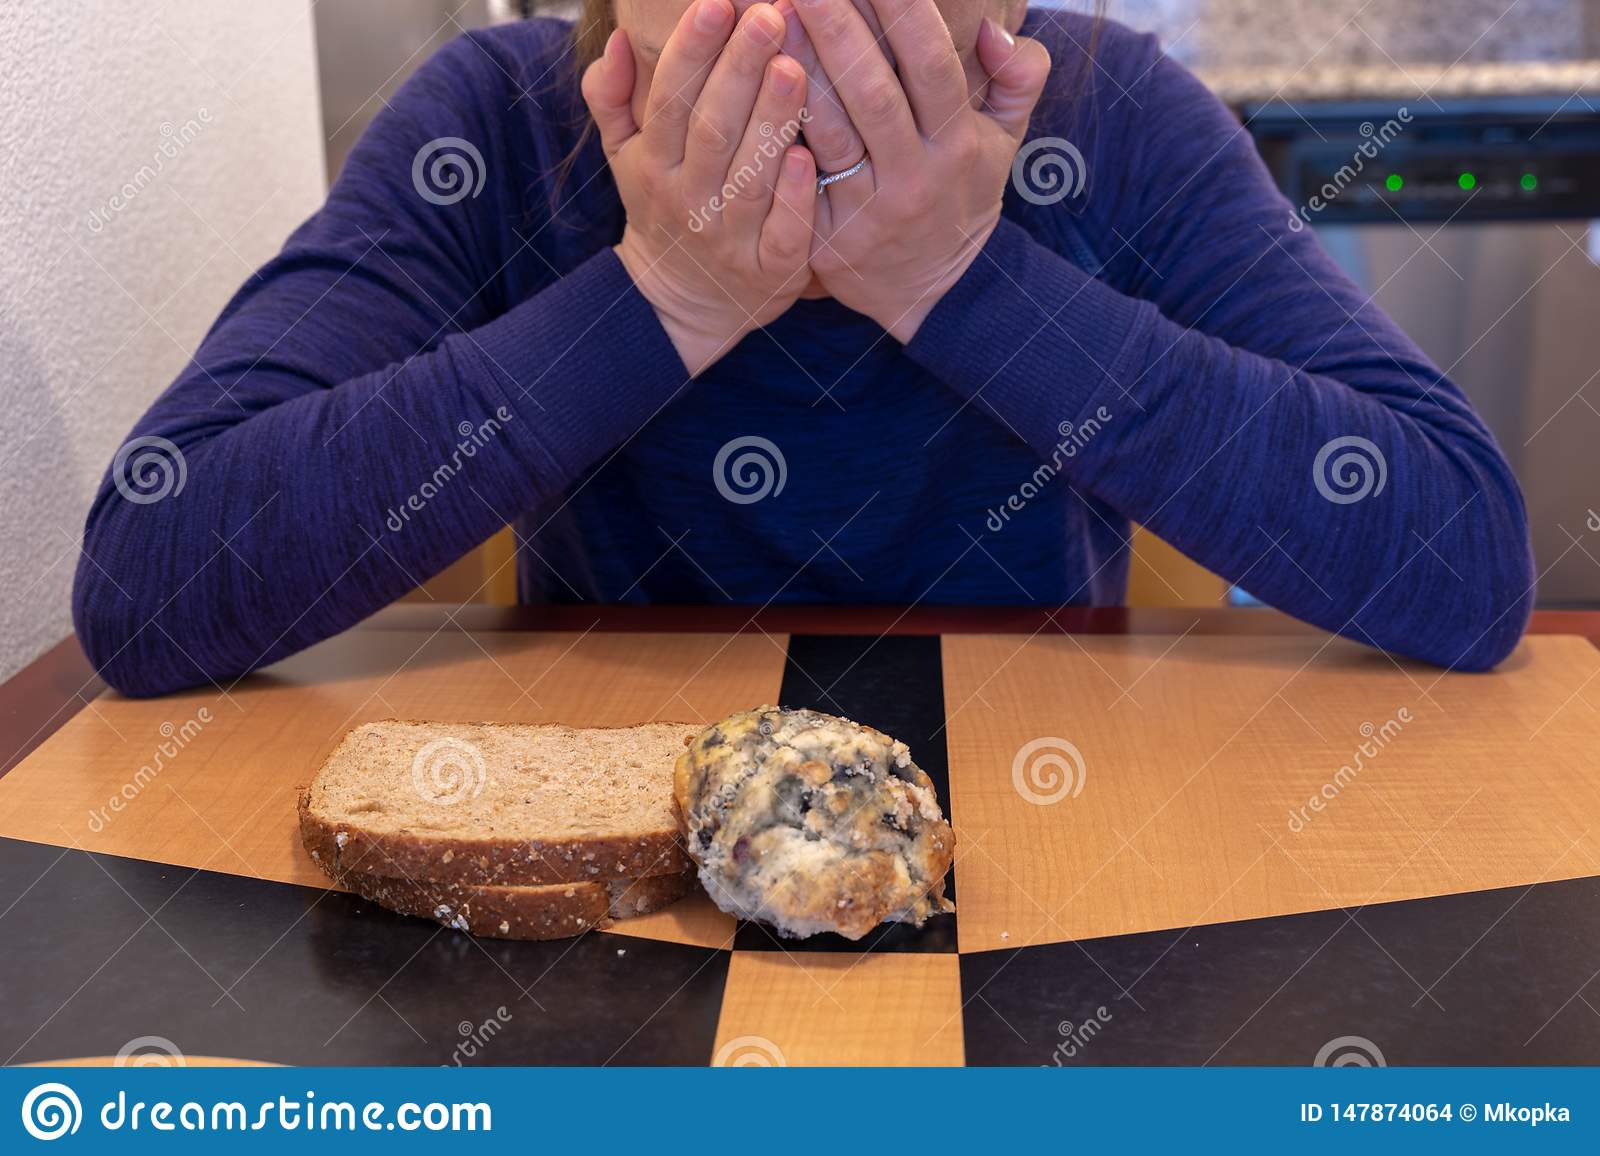 Young woman cries and buries her head and face while sitting at a kitchen table with a scone and toast. Concept for dieting and